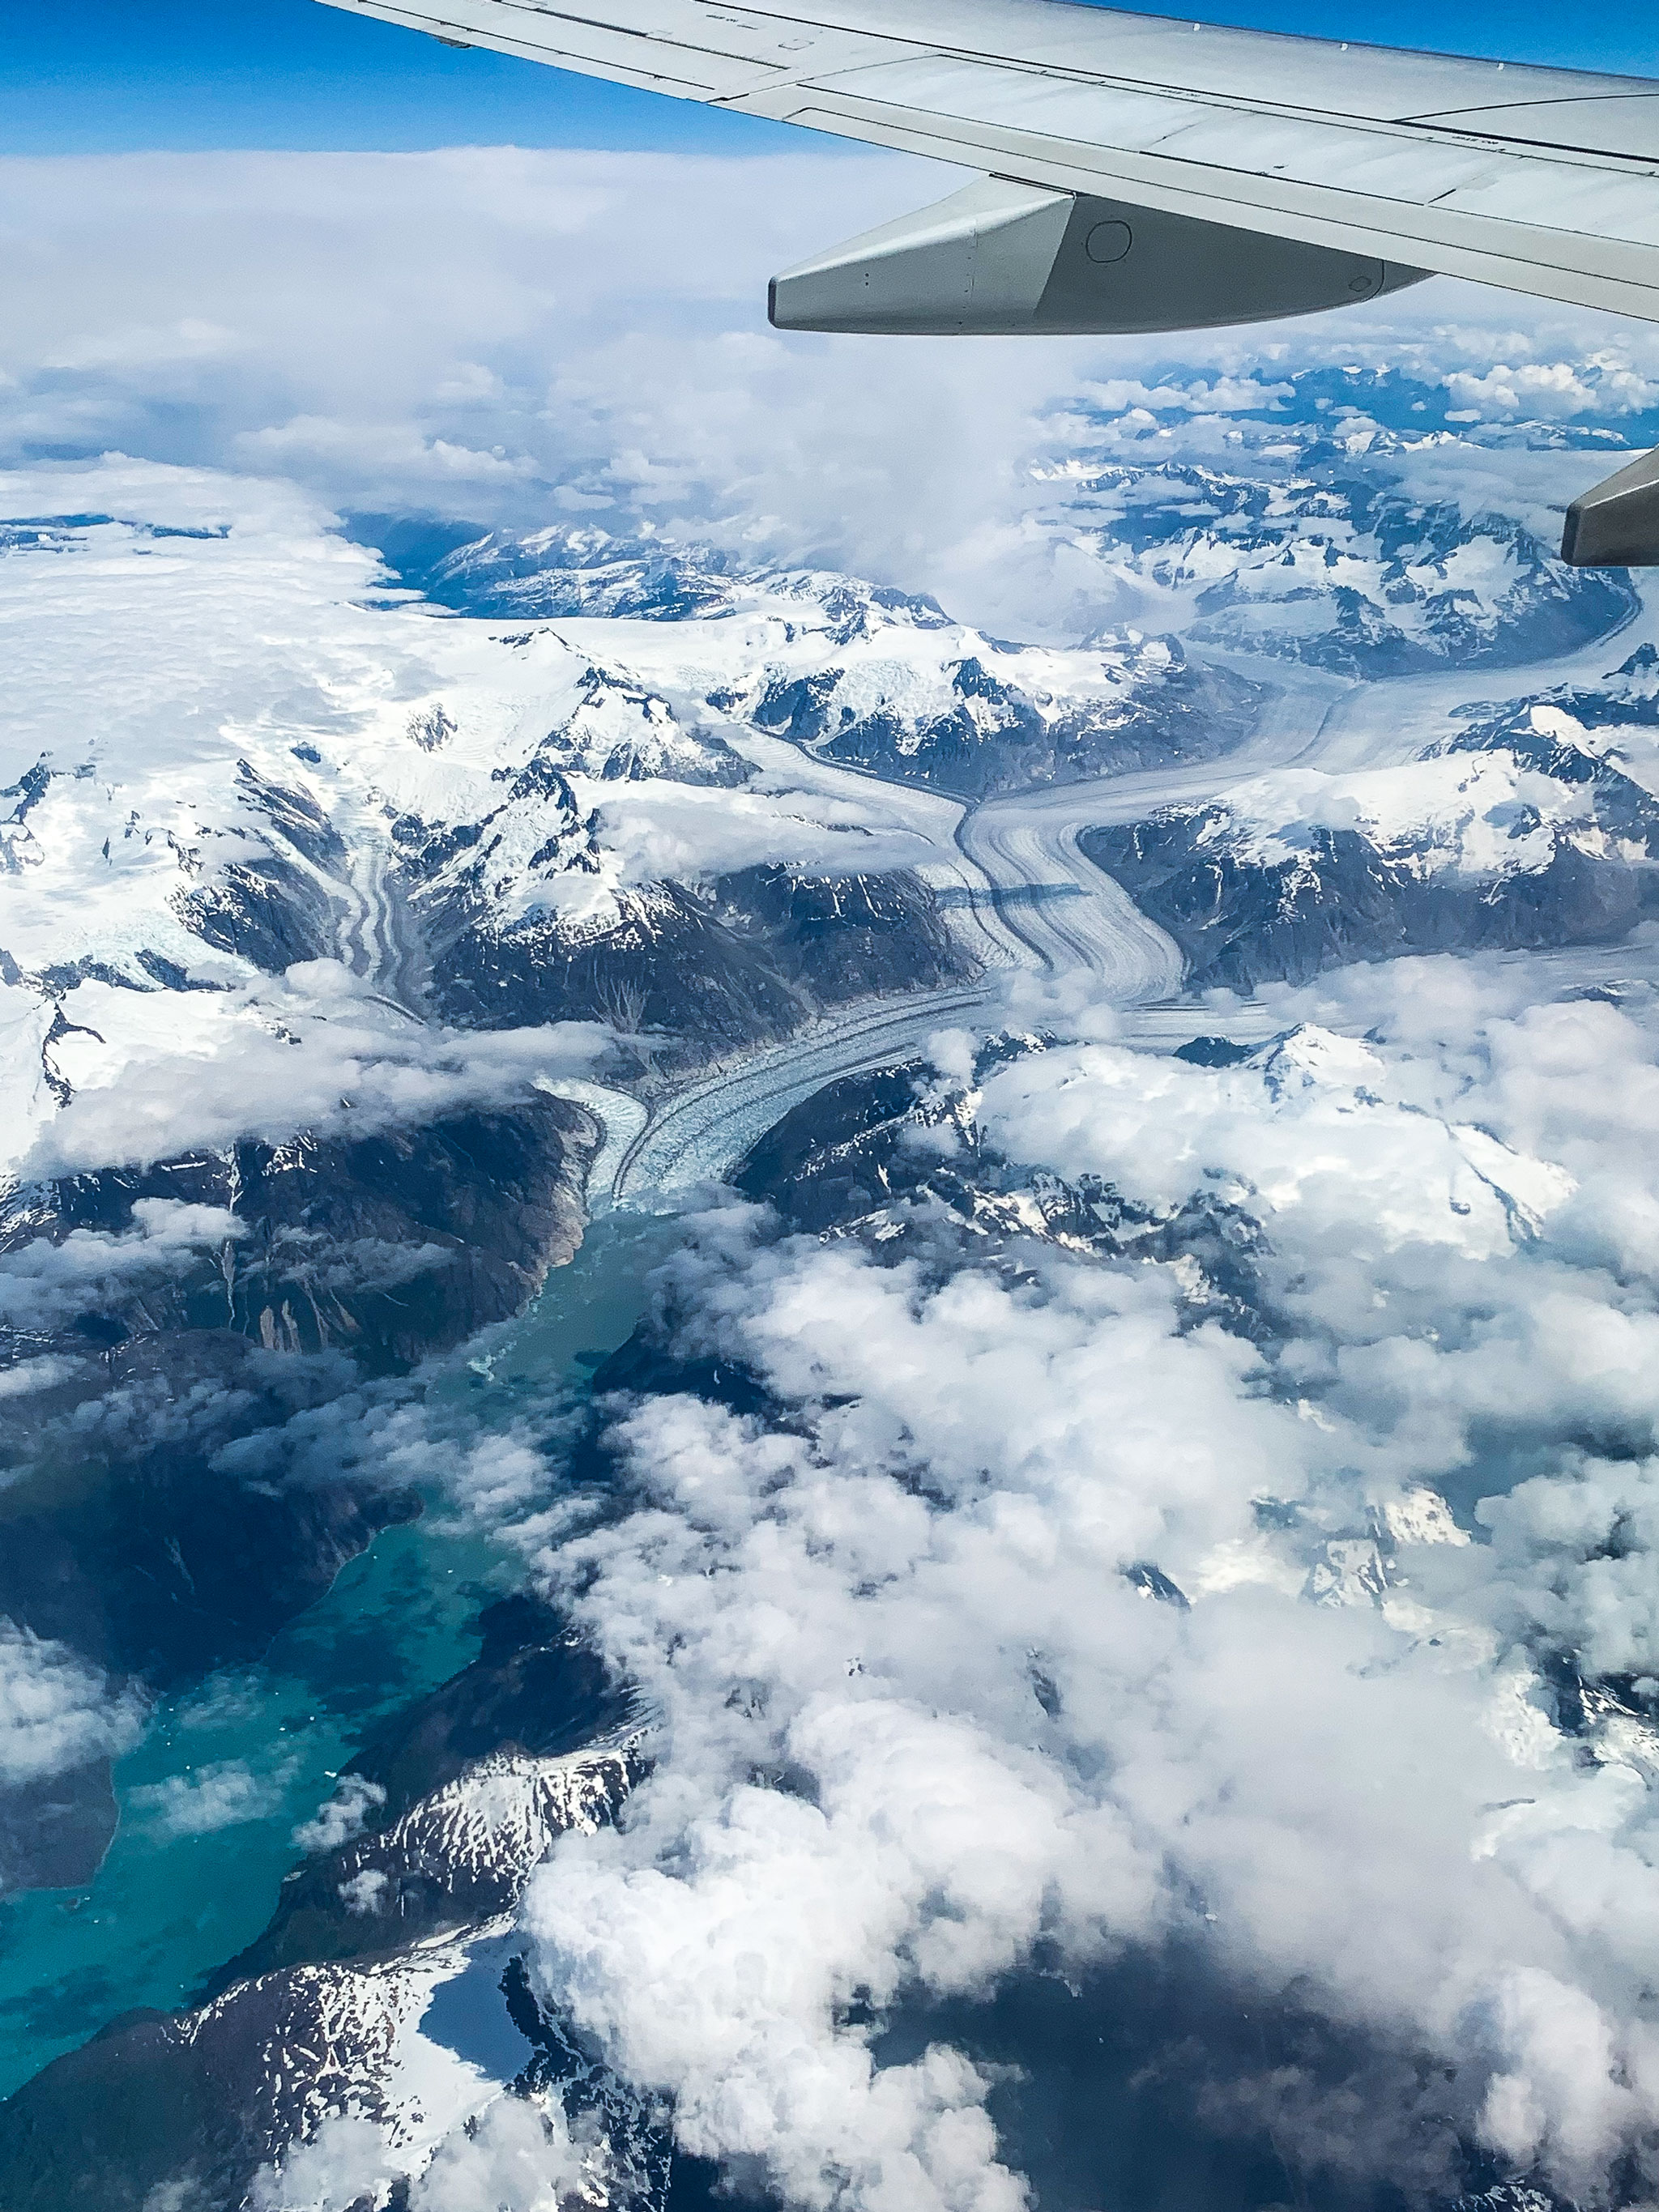 glaciers and glacier valleys in alaska from the plane